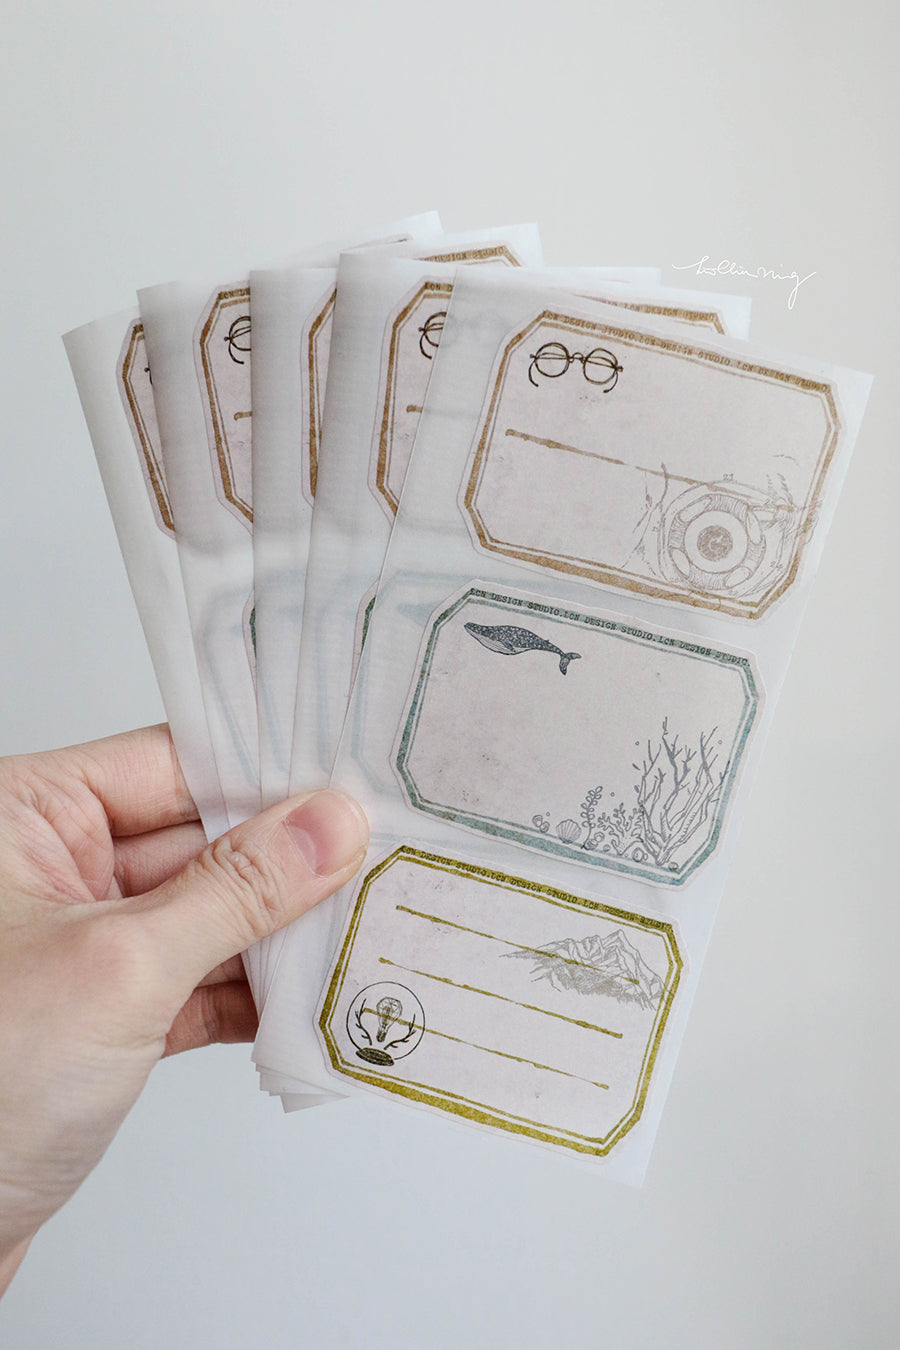 LCN Vintage Label Sticker set